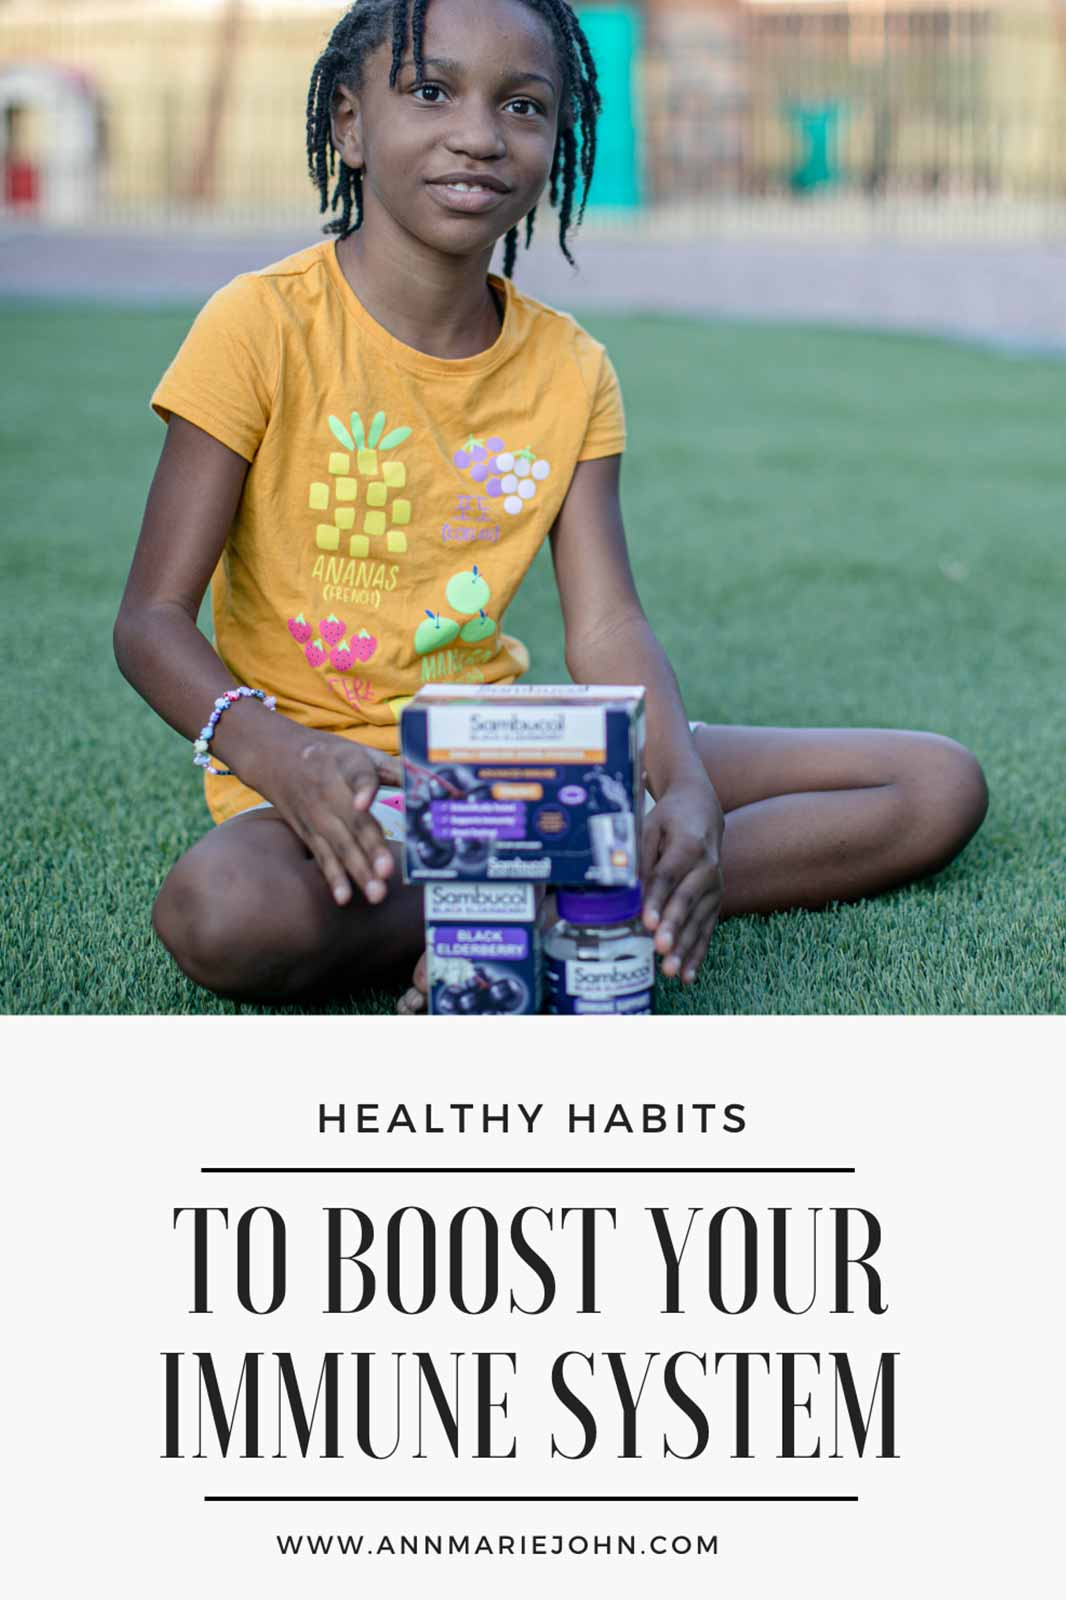 Healthy Habits To Boost Your Immune System